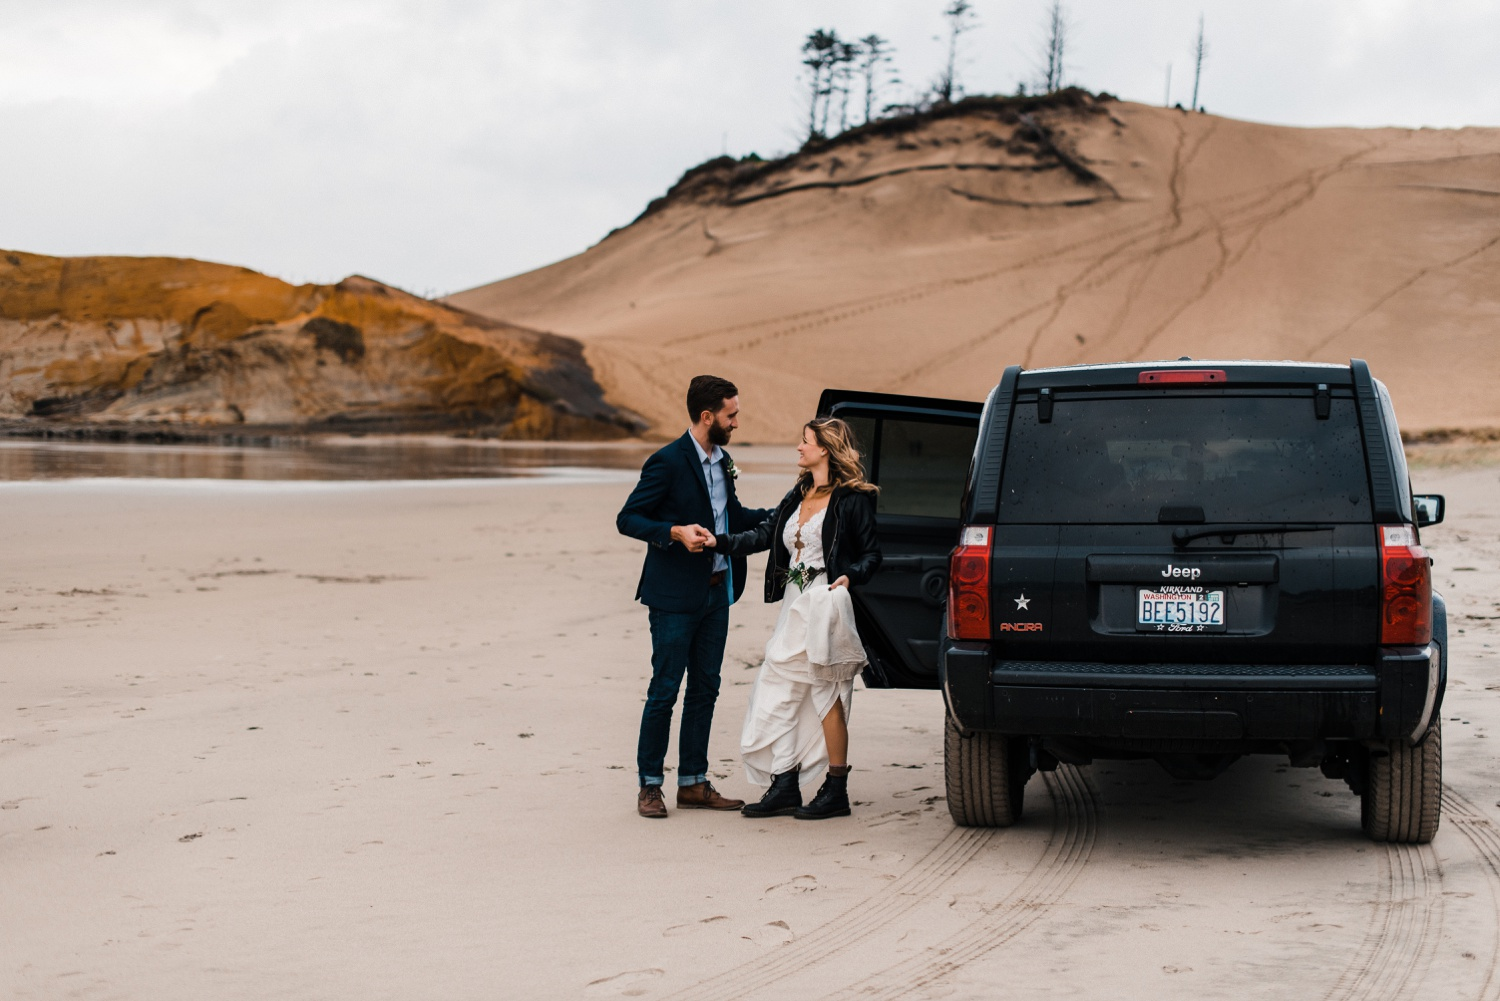 Oregon_Coast_Elopement_Wedding_The_Foxes_Photography_076.jpg